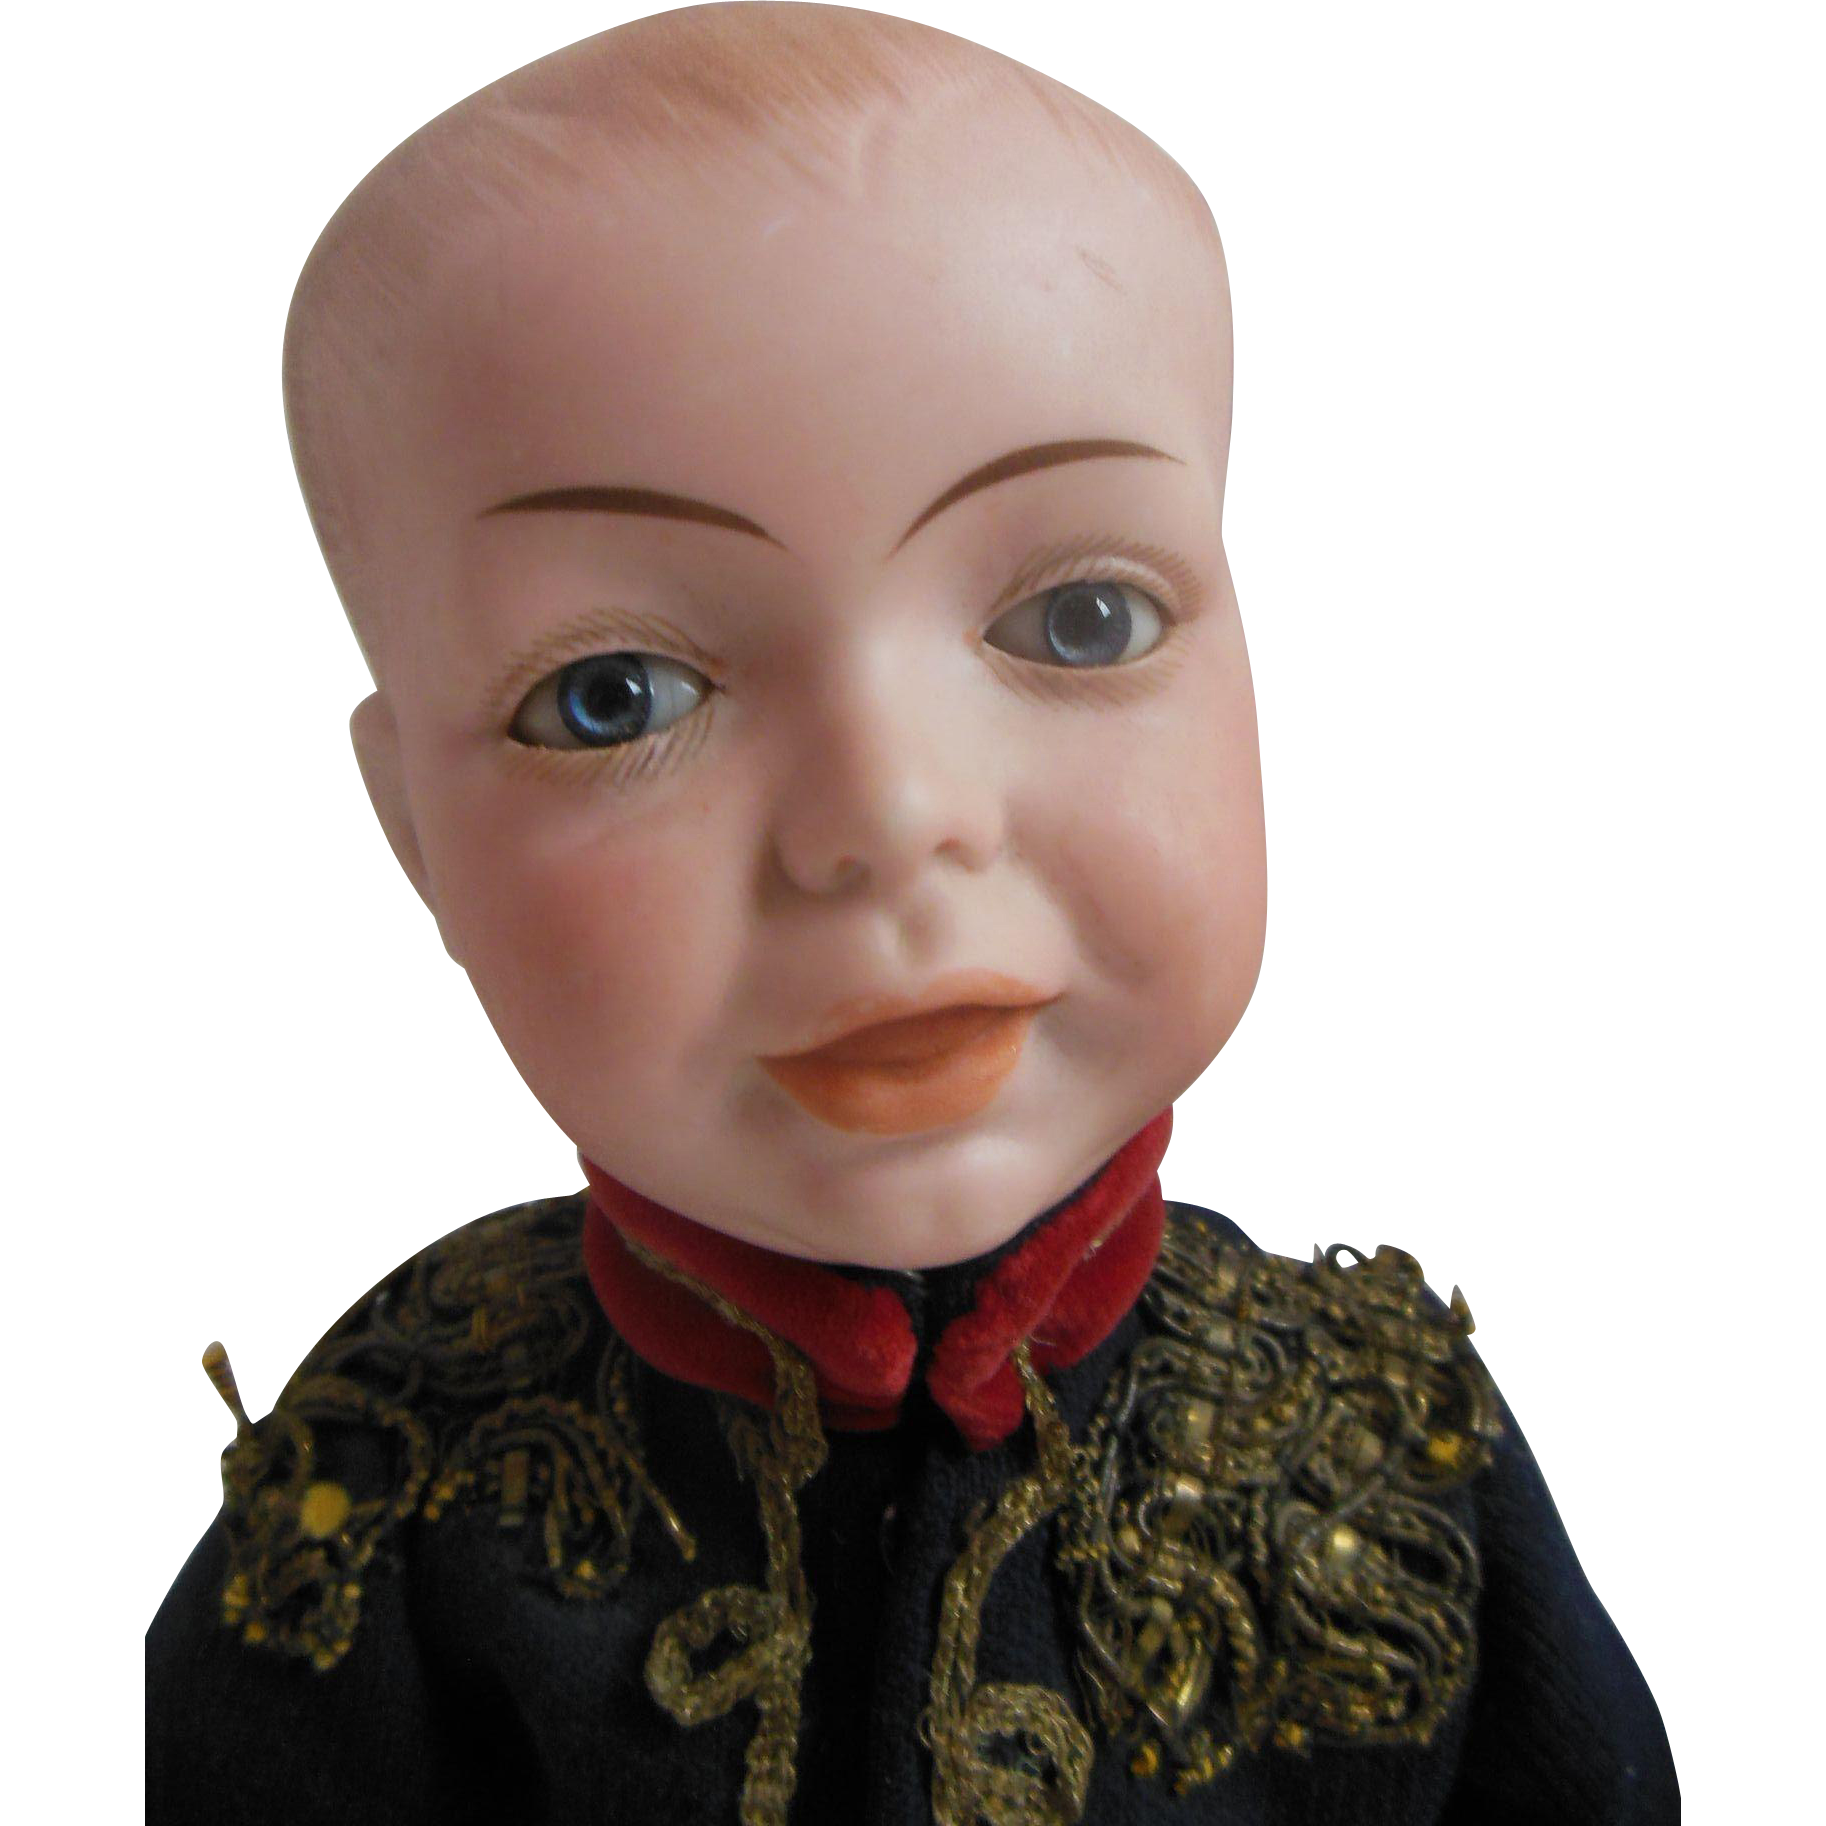 SFBJ 226 French Character doll 15 inch